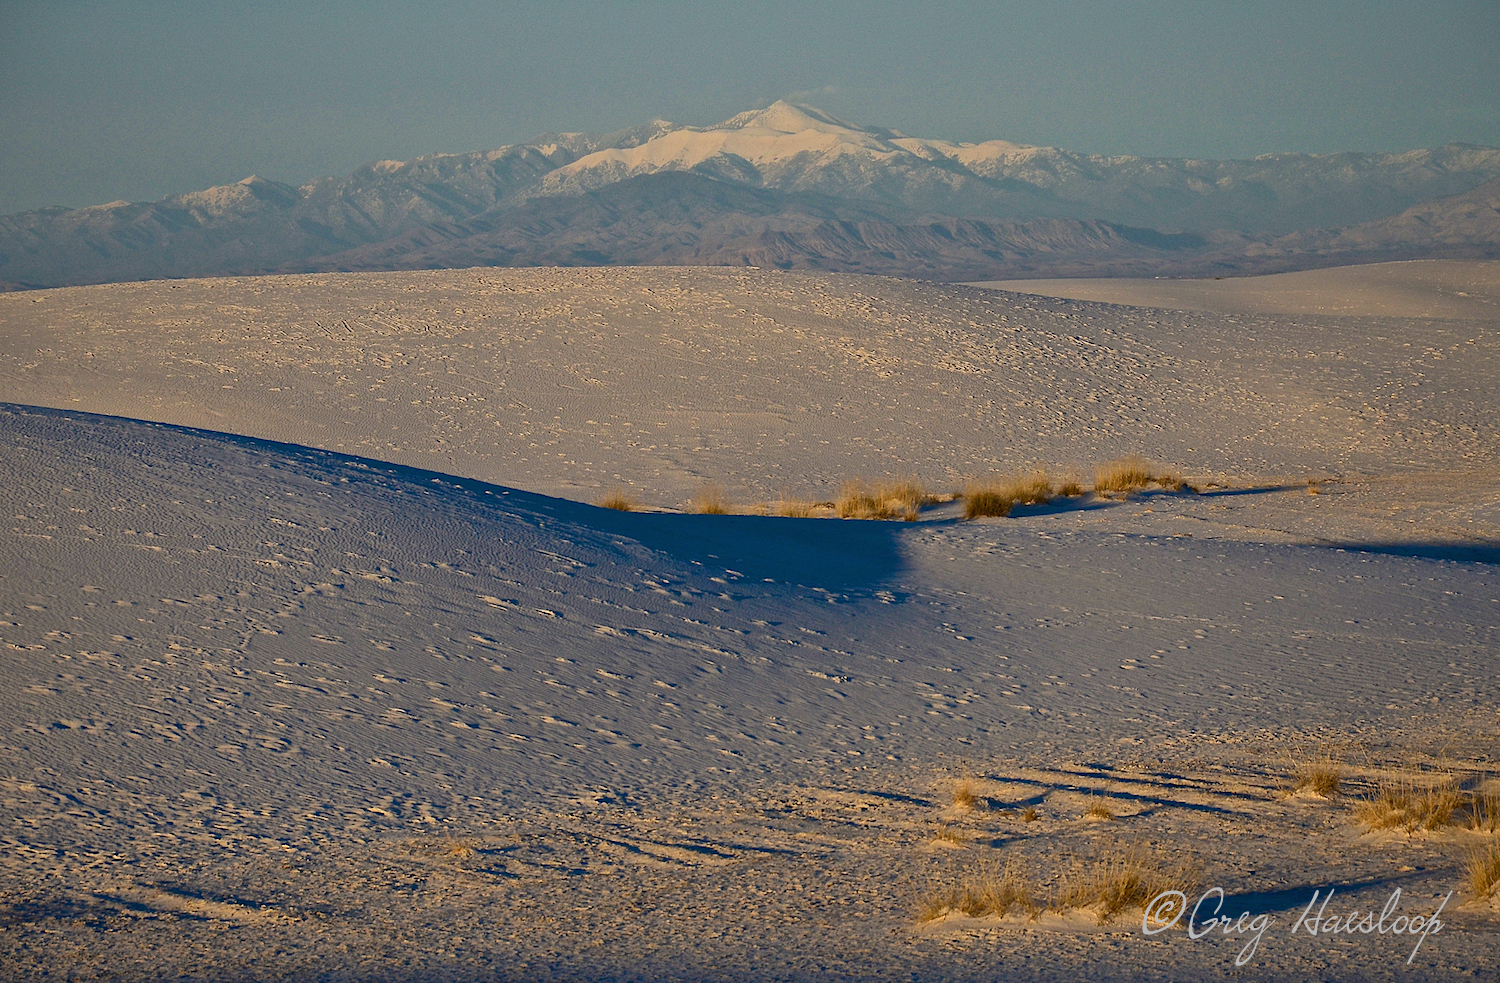 It is not unusual for the dunes to look brown, beige or golden in early morning or late afternoon light. But, gone are the rippled shadows we treasure. Very interesting texture!